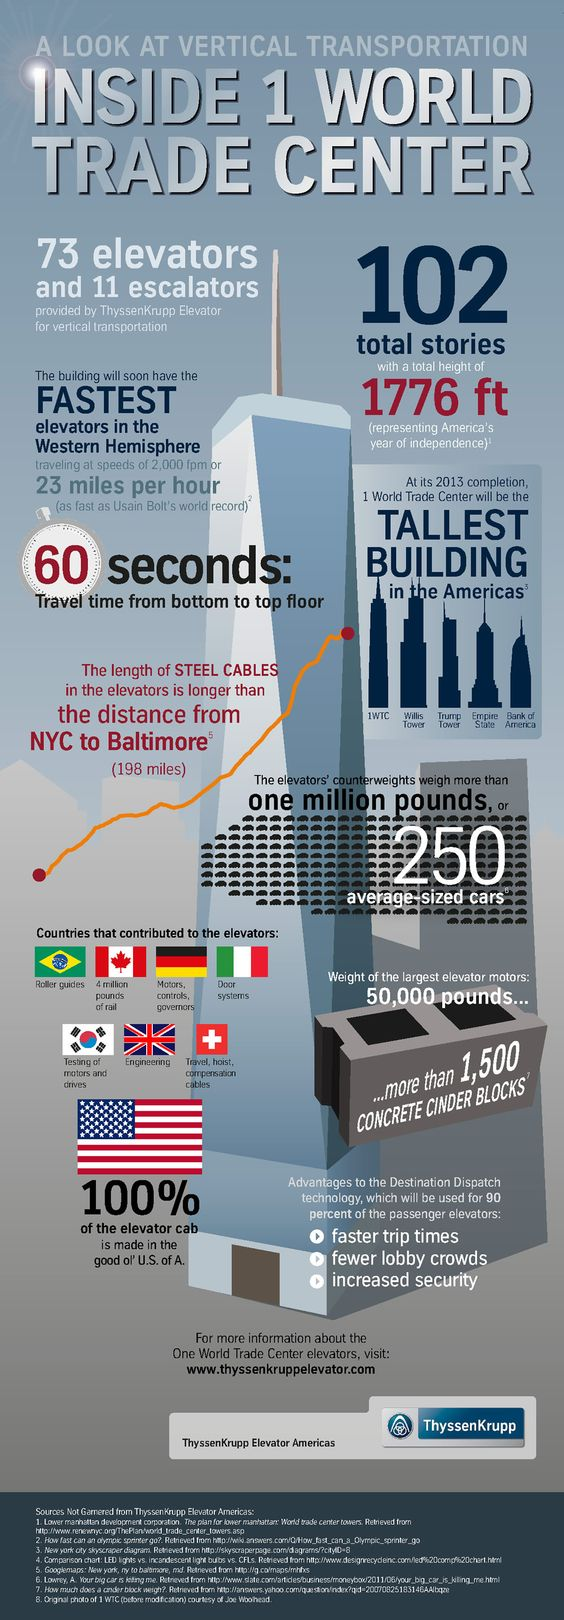 a look at vertical transportation inside one world trade center a look at vertical transportation inside one world trade center infographic